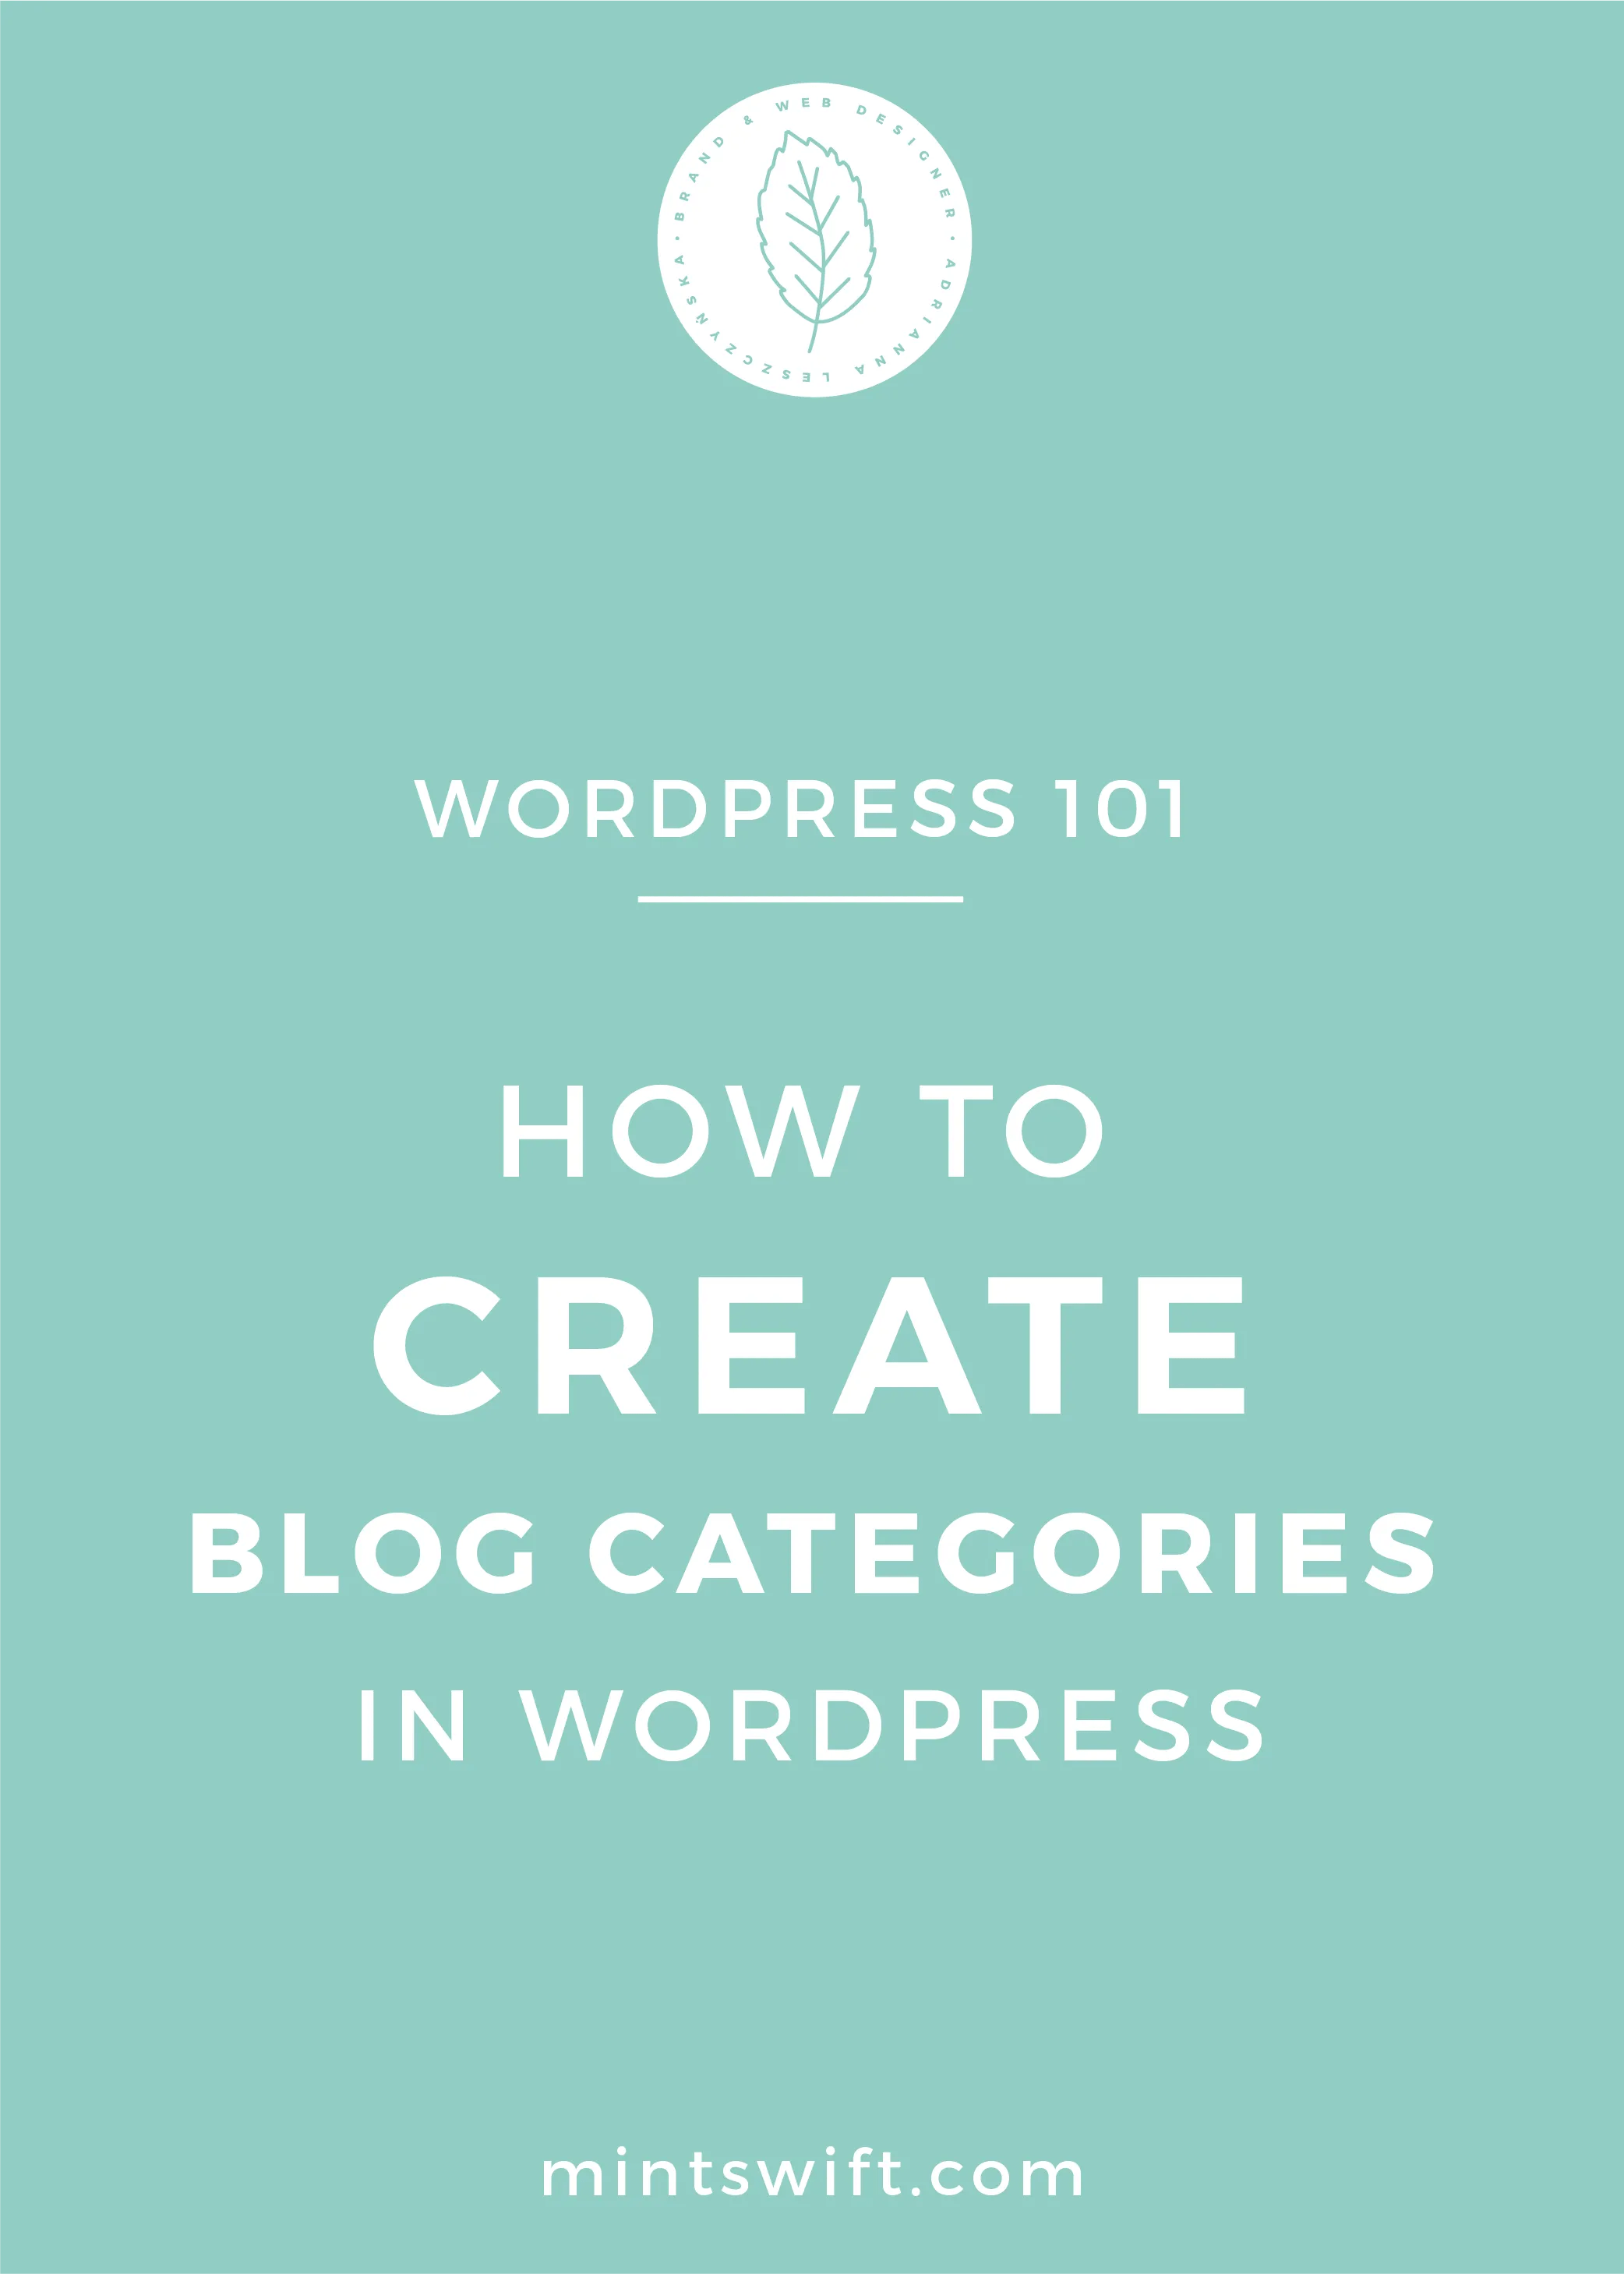 How to Create Blog Categories in WordPress - MintSwift